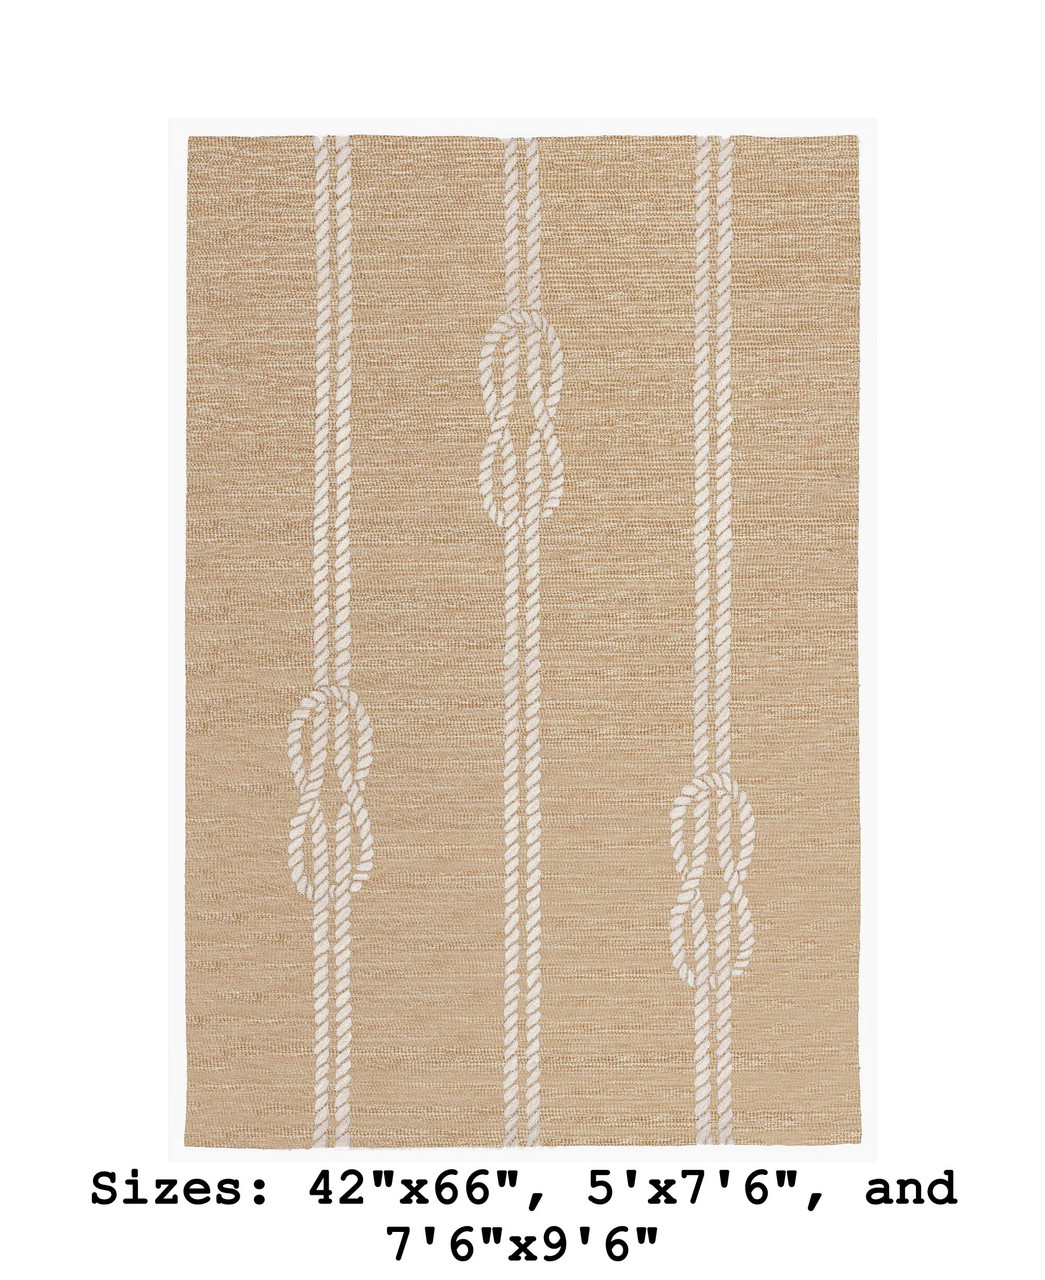 Neutral Capri Nautical Ropes Indoor/Outdoor Rug - Large Rectangle